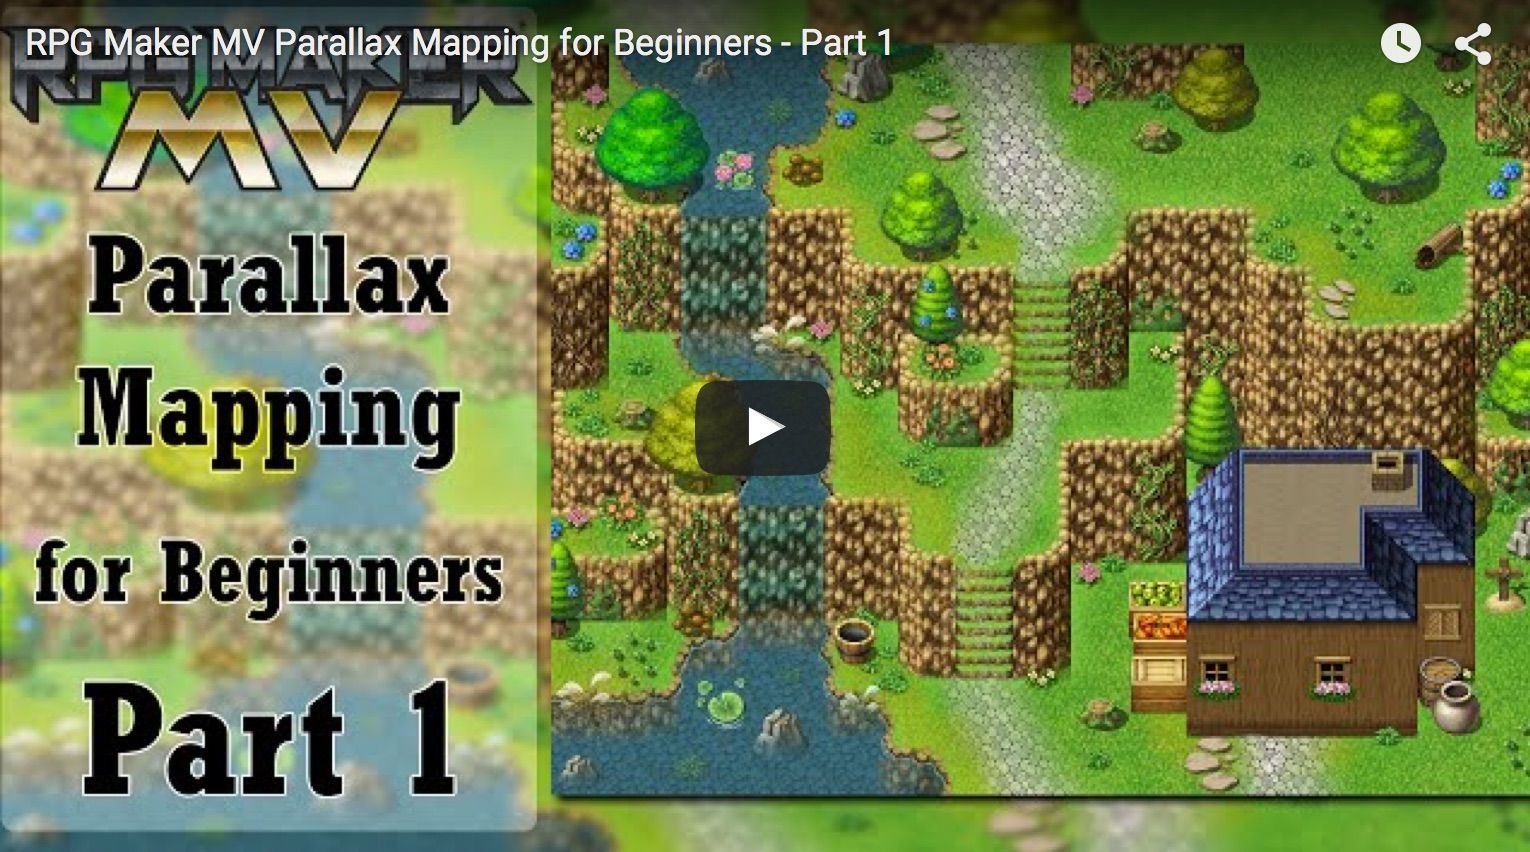 My parallax mapping tutorial a 3 part video series made for my parallax mapping tutorial a video series made for complete beginners of rpg maker using only the default rtp make beautiful maps with ease baditri Gallery